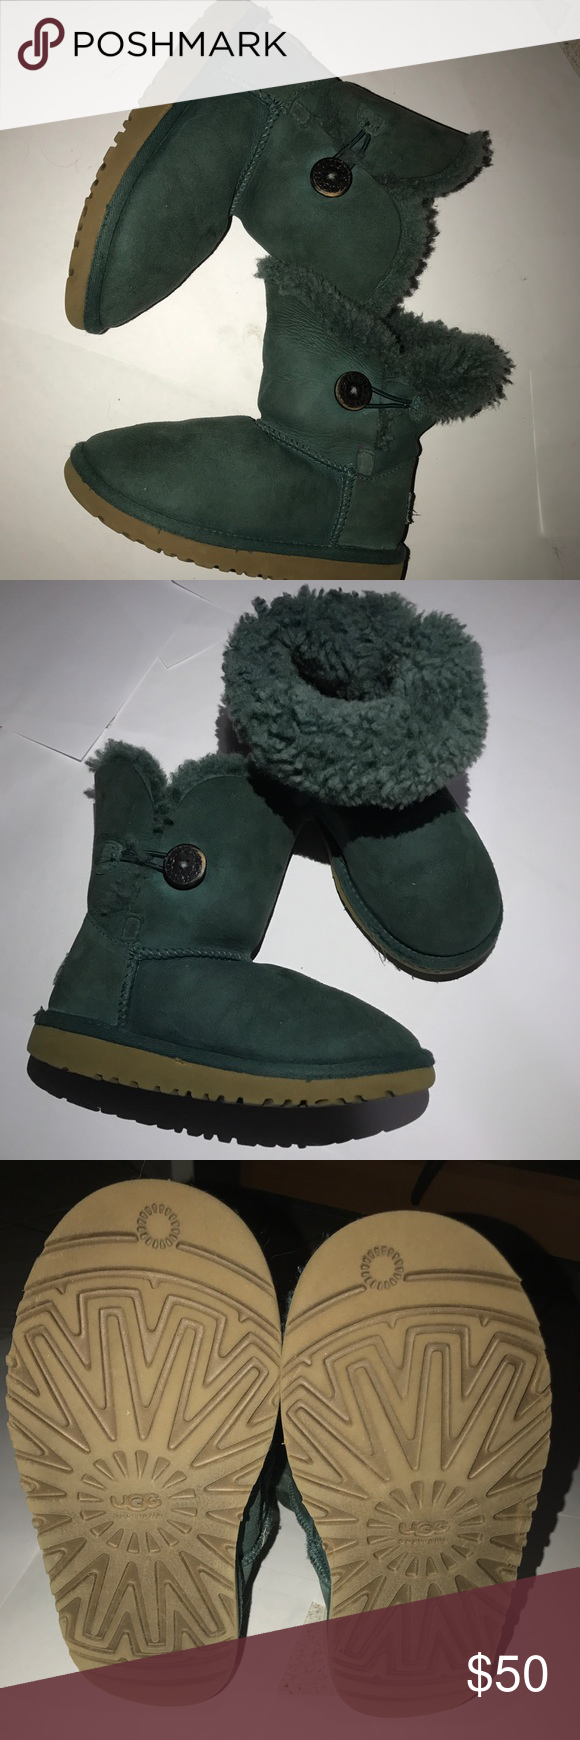 ugg boots teal color